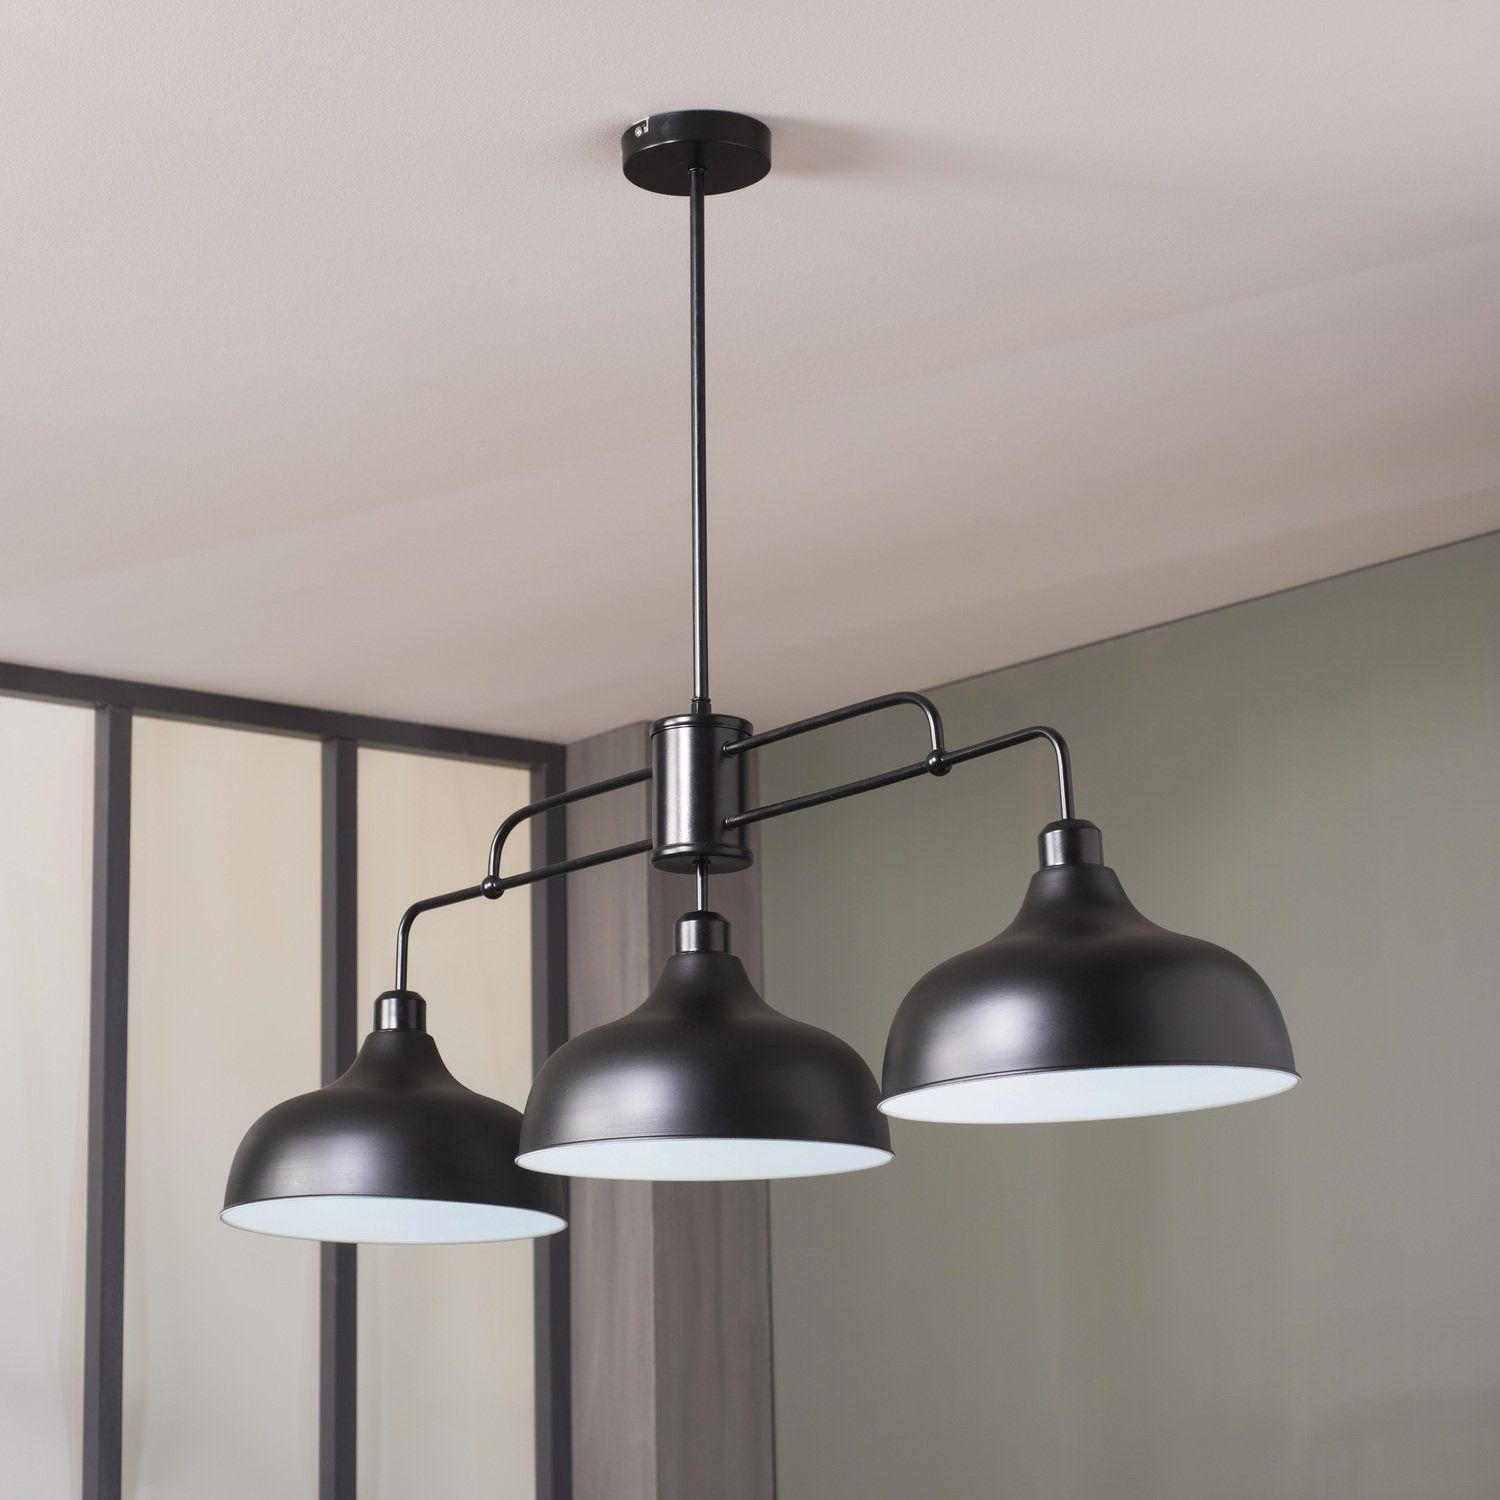 Cette suspension design adopte un style r solument for Luminaire suspendu moderne